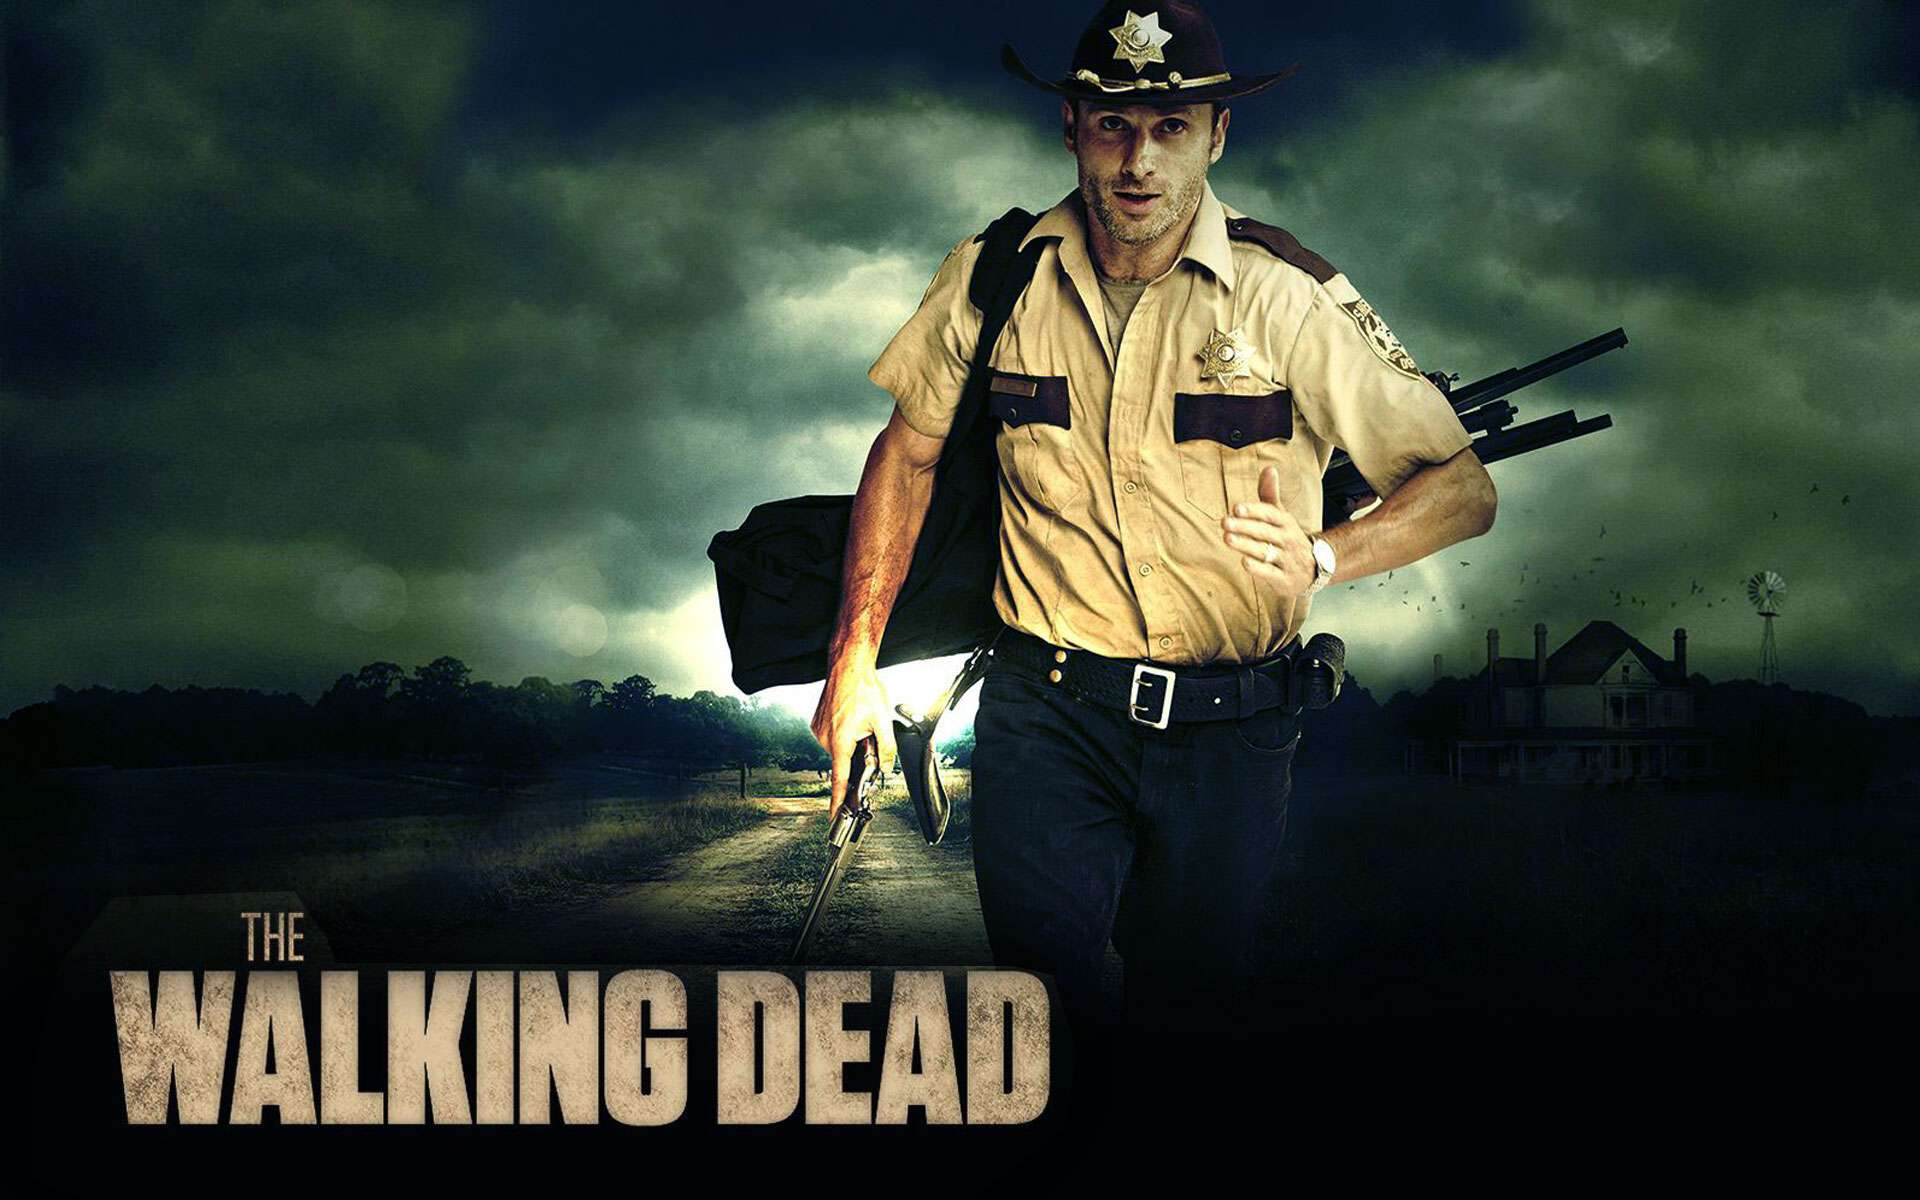 The walking dead. Wallpapers de la segunda temporada